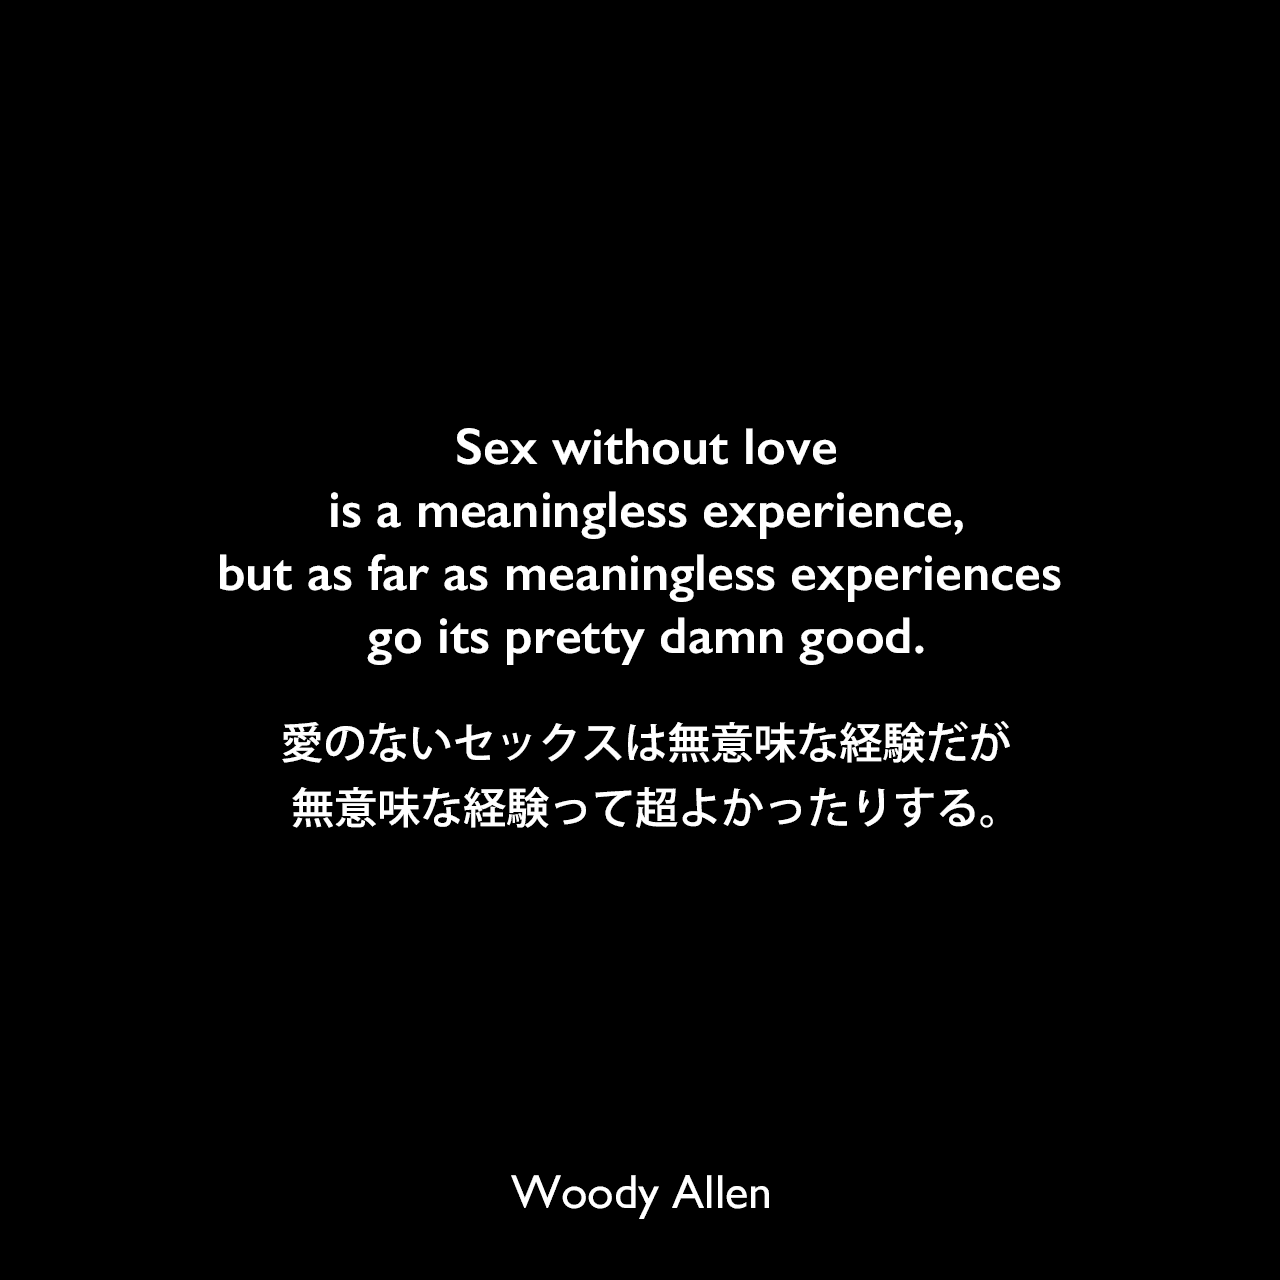 Sex without love is a meaningless experience, but as far as meaningless experiences go its pretty damn good.愛のないセックスは無意味な経験だが、無意味な経験って超よかったりする。Woody Allen